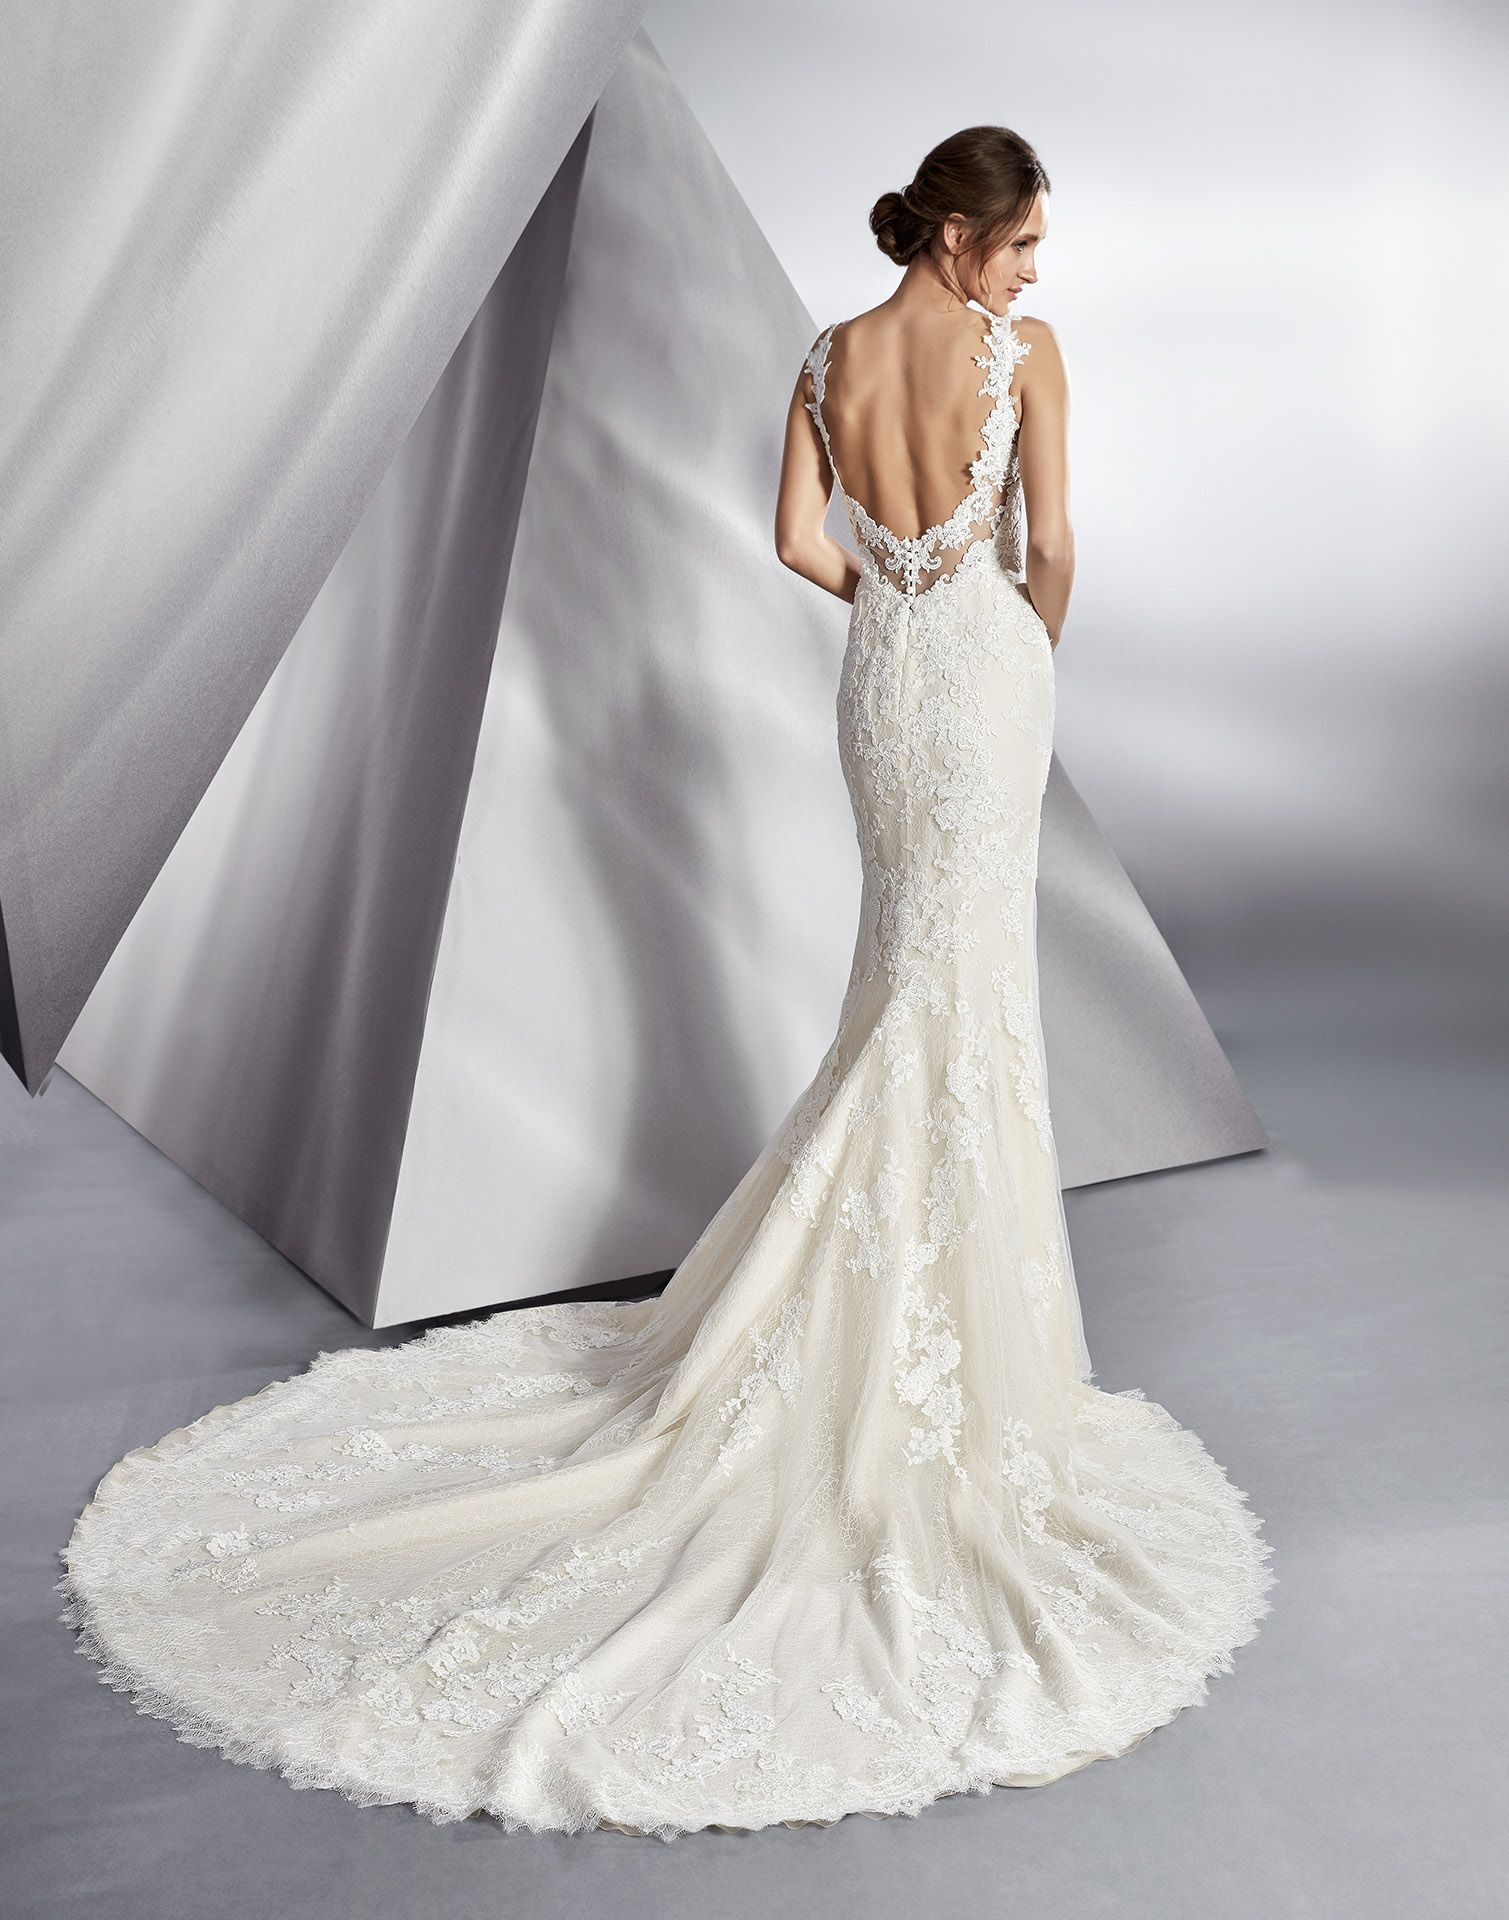 Beautiful a full and luxurious sleek lace wedding dress with an